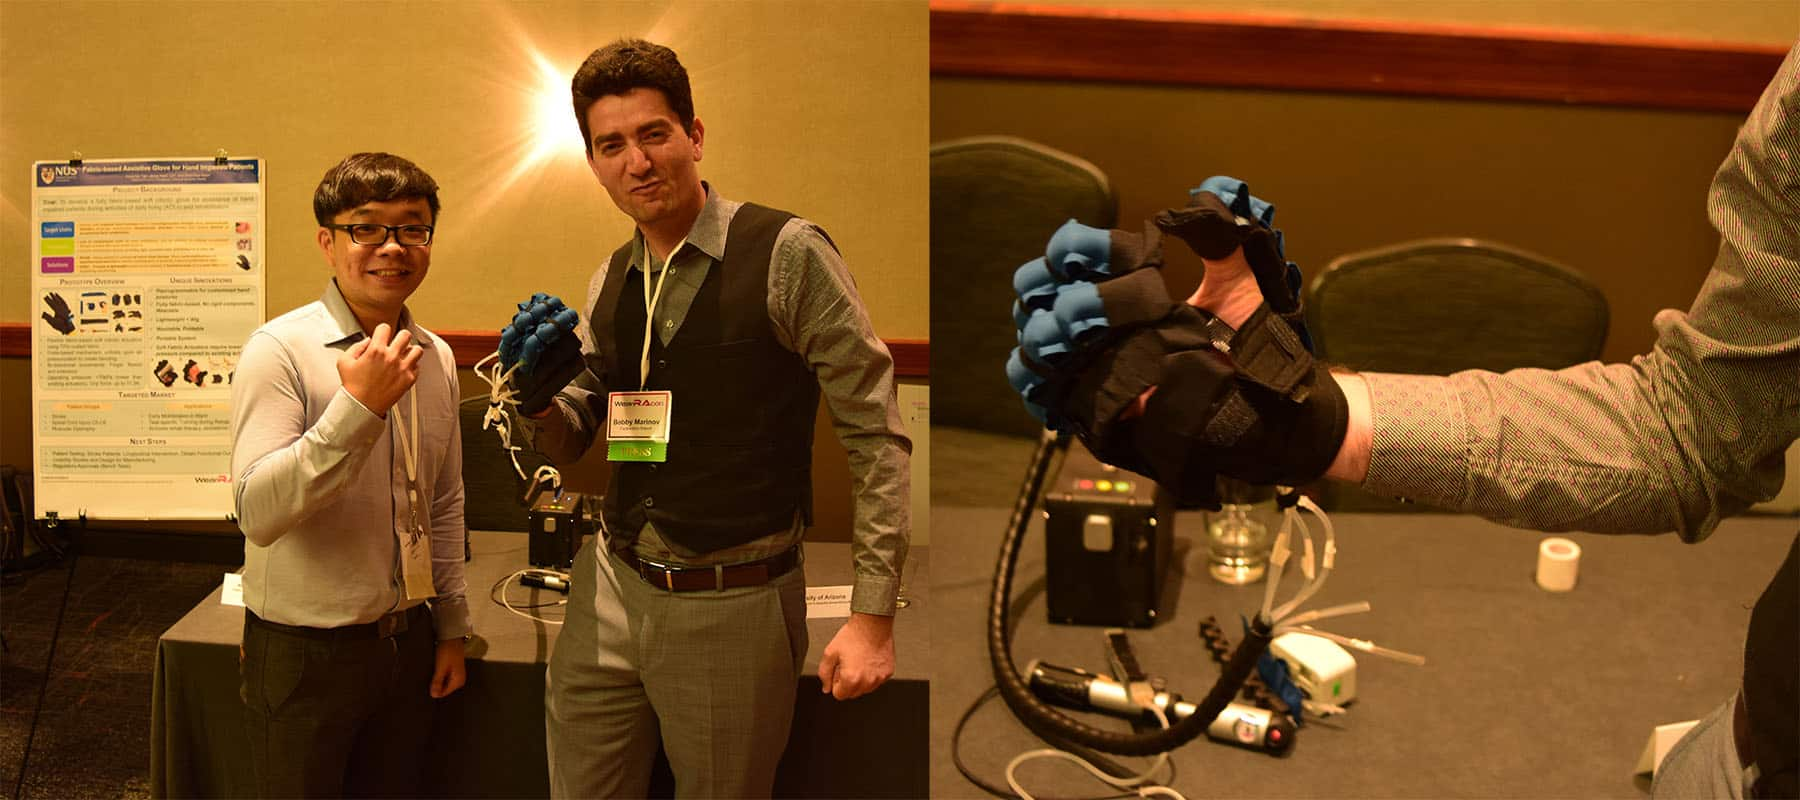 Hong Kai Yap, National University of Singapore and Bobby Marinov, Exoskeleton Report, demoing the Fabric-Based Assistive Glove for Hand Impaired Patients